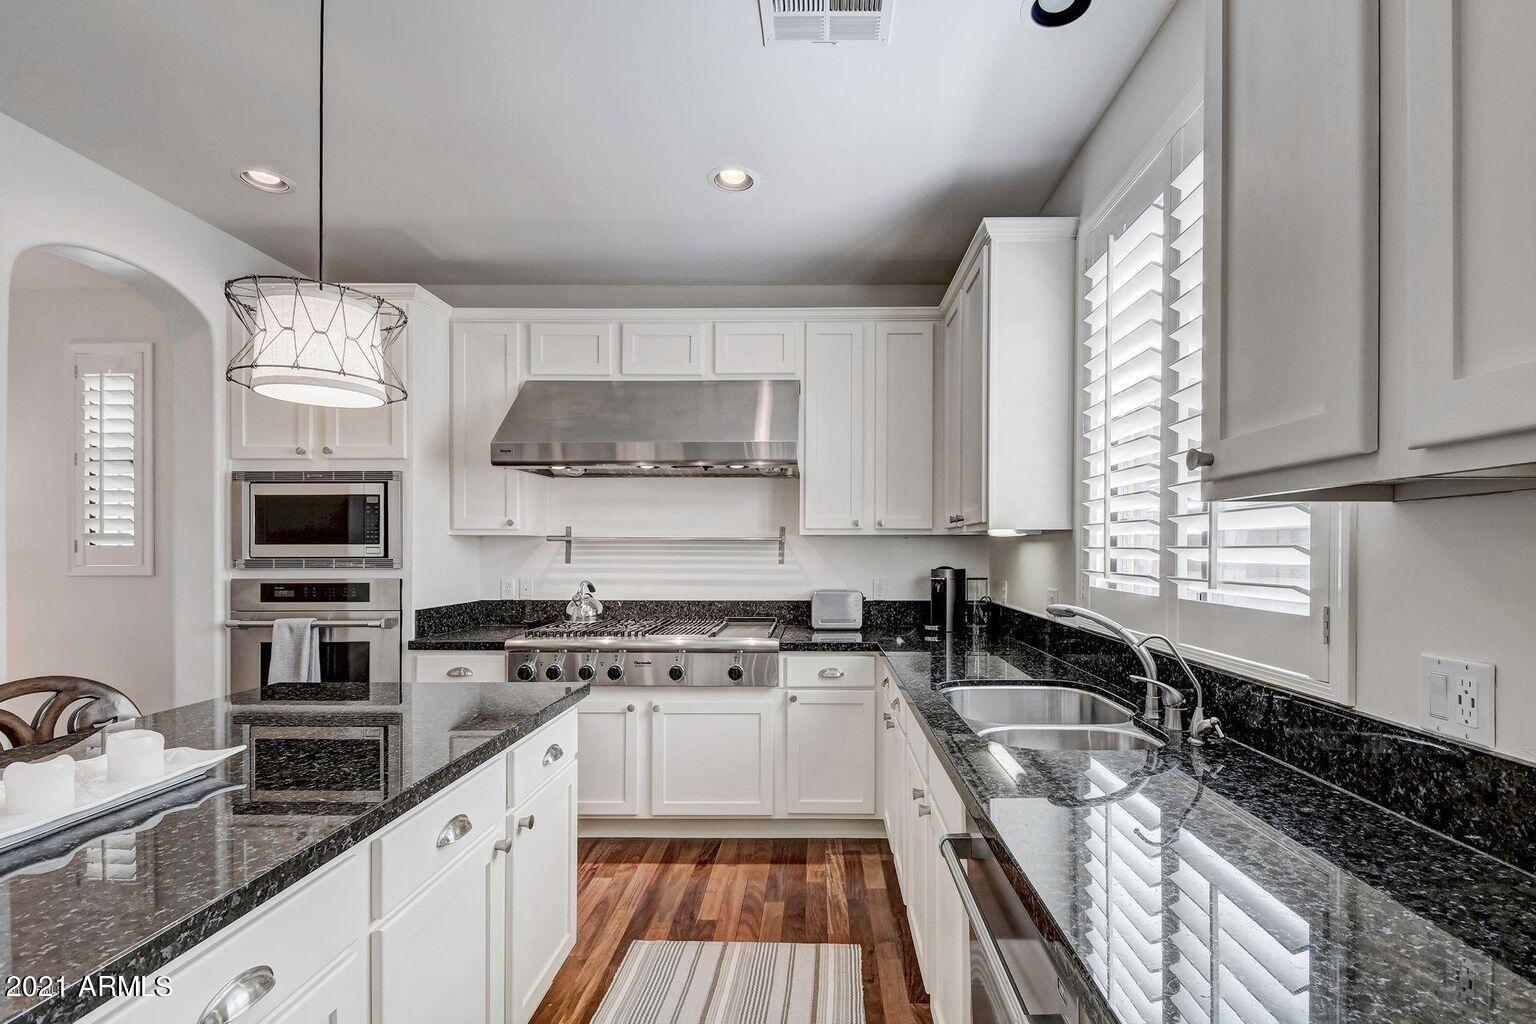 20704 N 90TH Place # 1068, Scottsdale, AZ 85255, 3 Bedrooms Bedrooms, ,Residential Lease,For Rent,20704 N 90TH Place # 1068,6256917